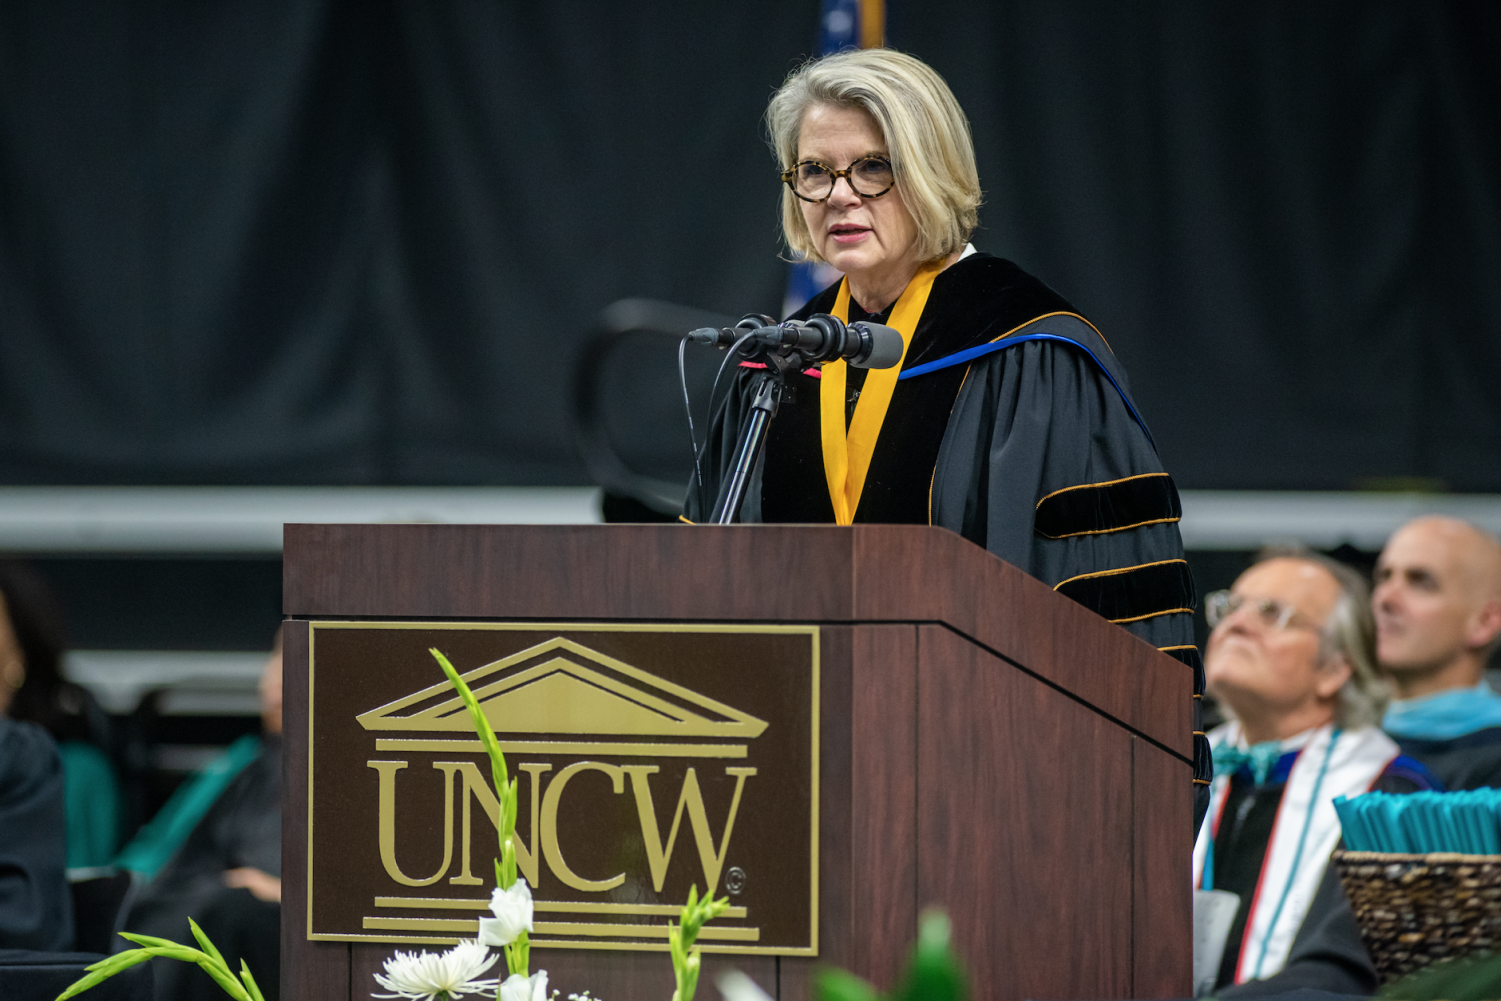 UNC System President Margaret Spellings speaks of Hurricane Florence, transitional times in life and UNCW's resilience in her commencement address.